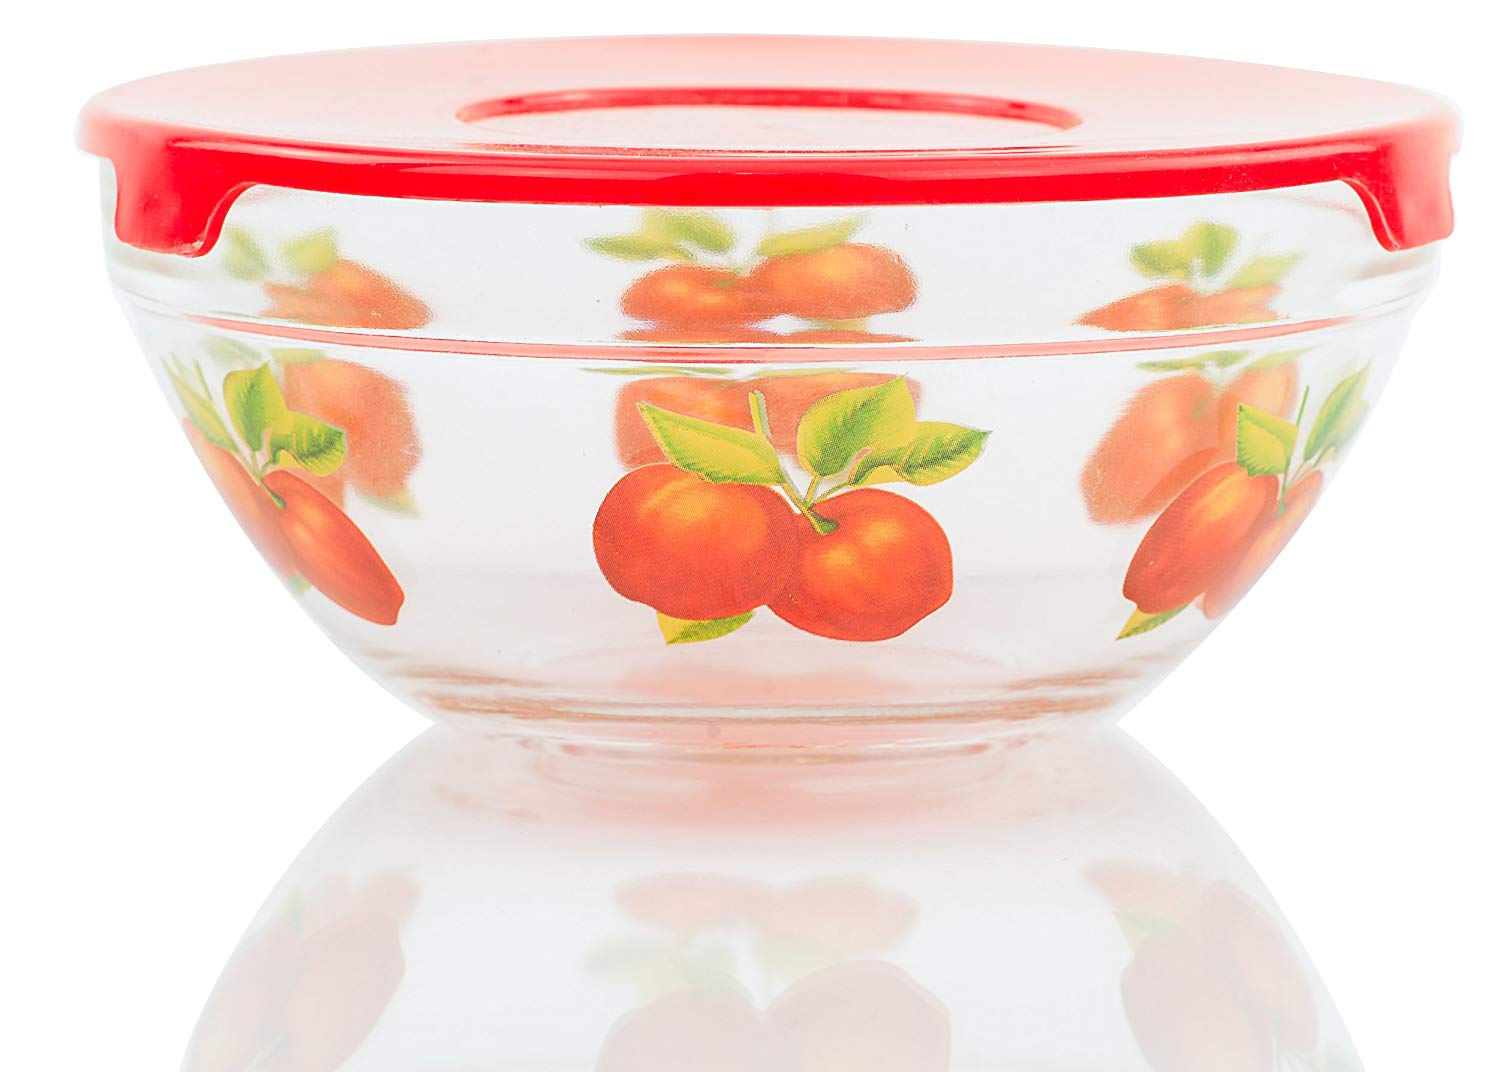 5 Pcs Nested Glass Mixing Bowls Set With Apple Design and Red Lids - Set of 5 Glass Food Storage Containers